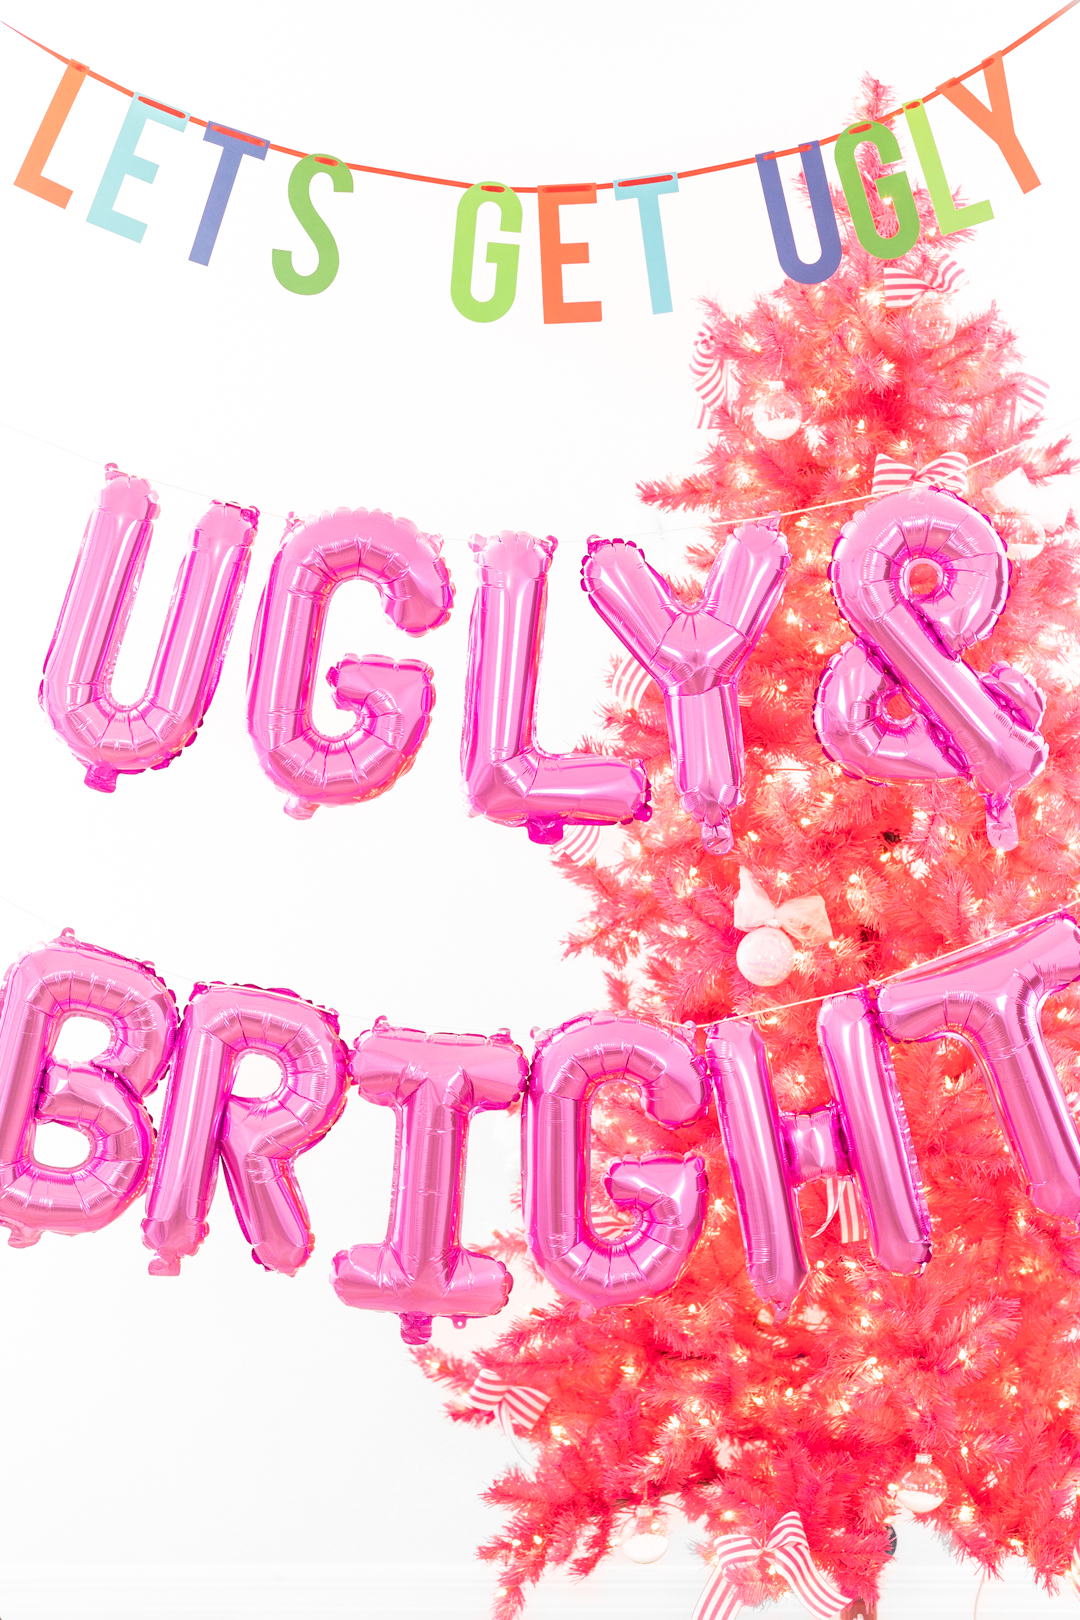 ugly and bright balloons